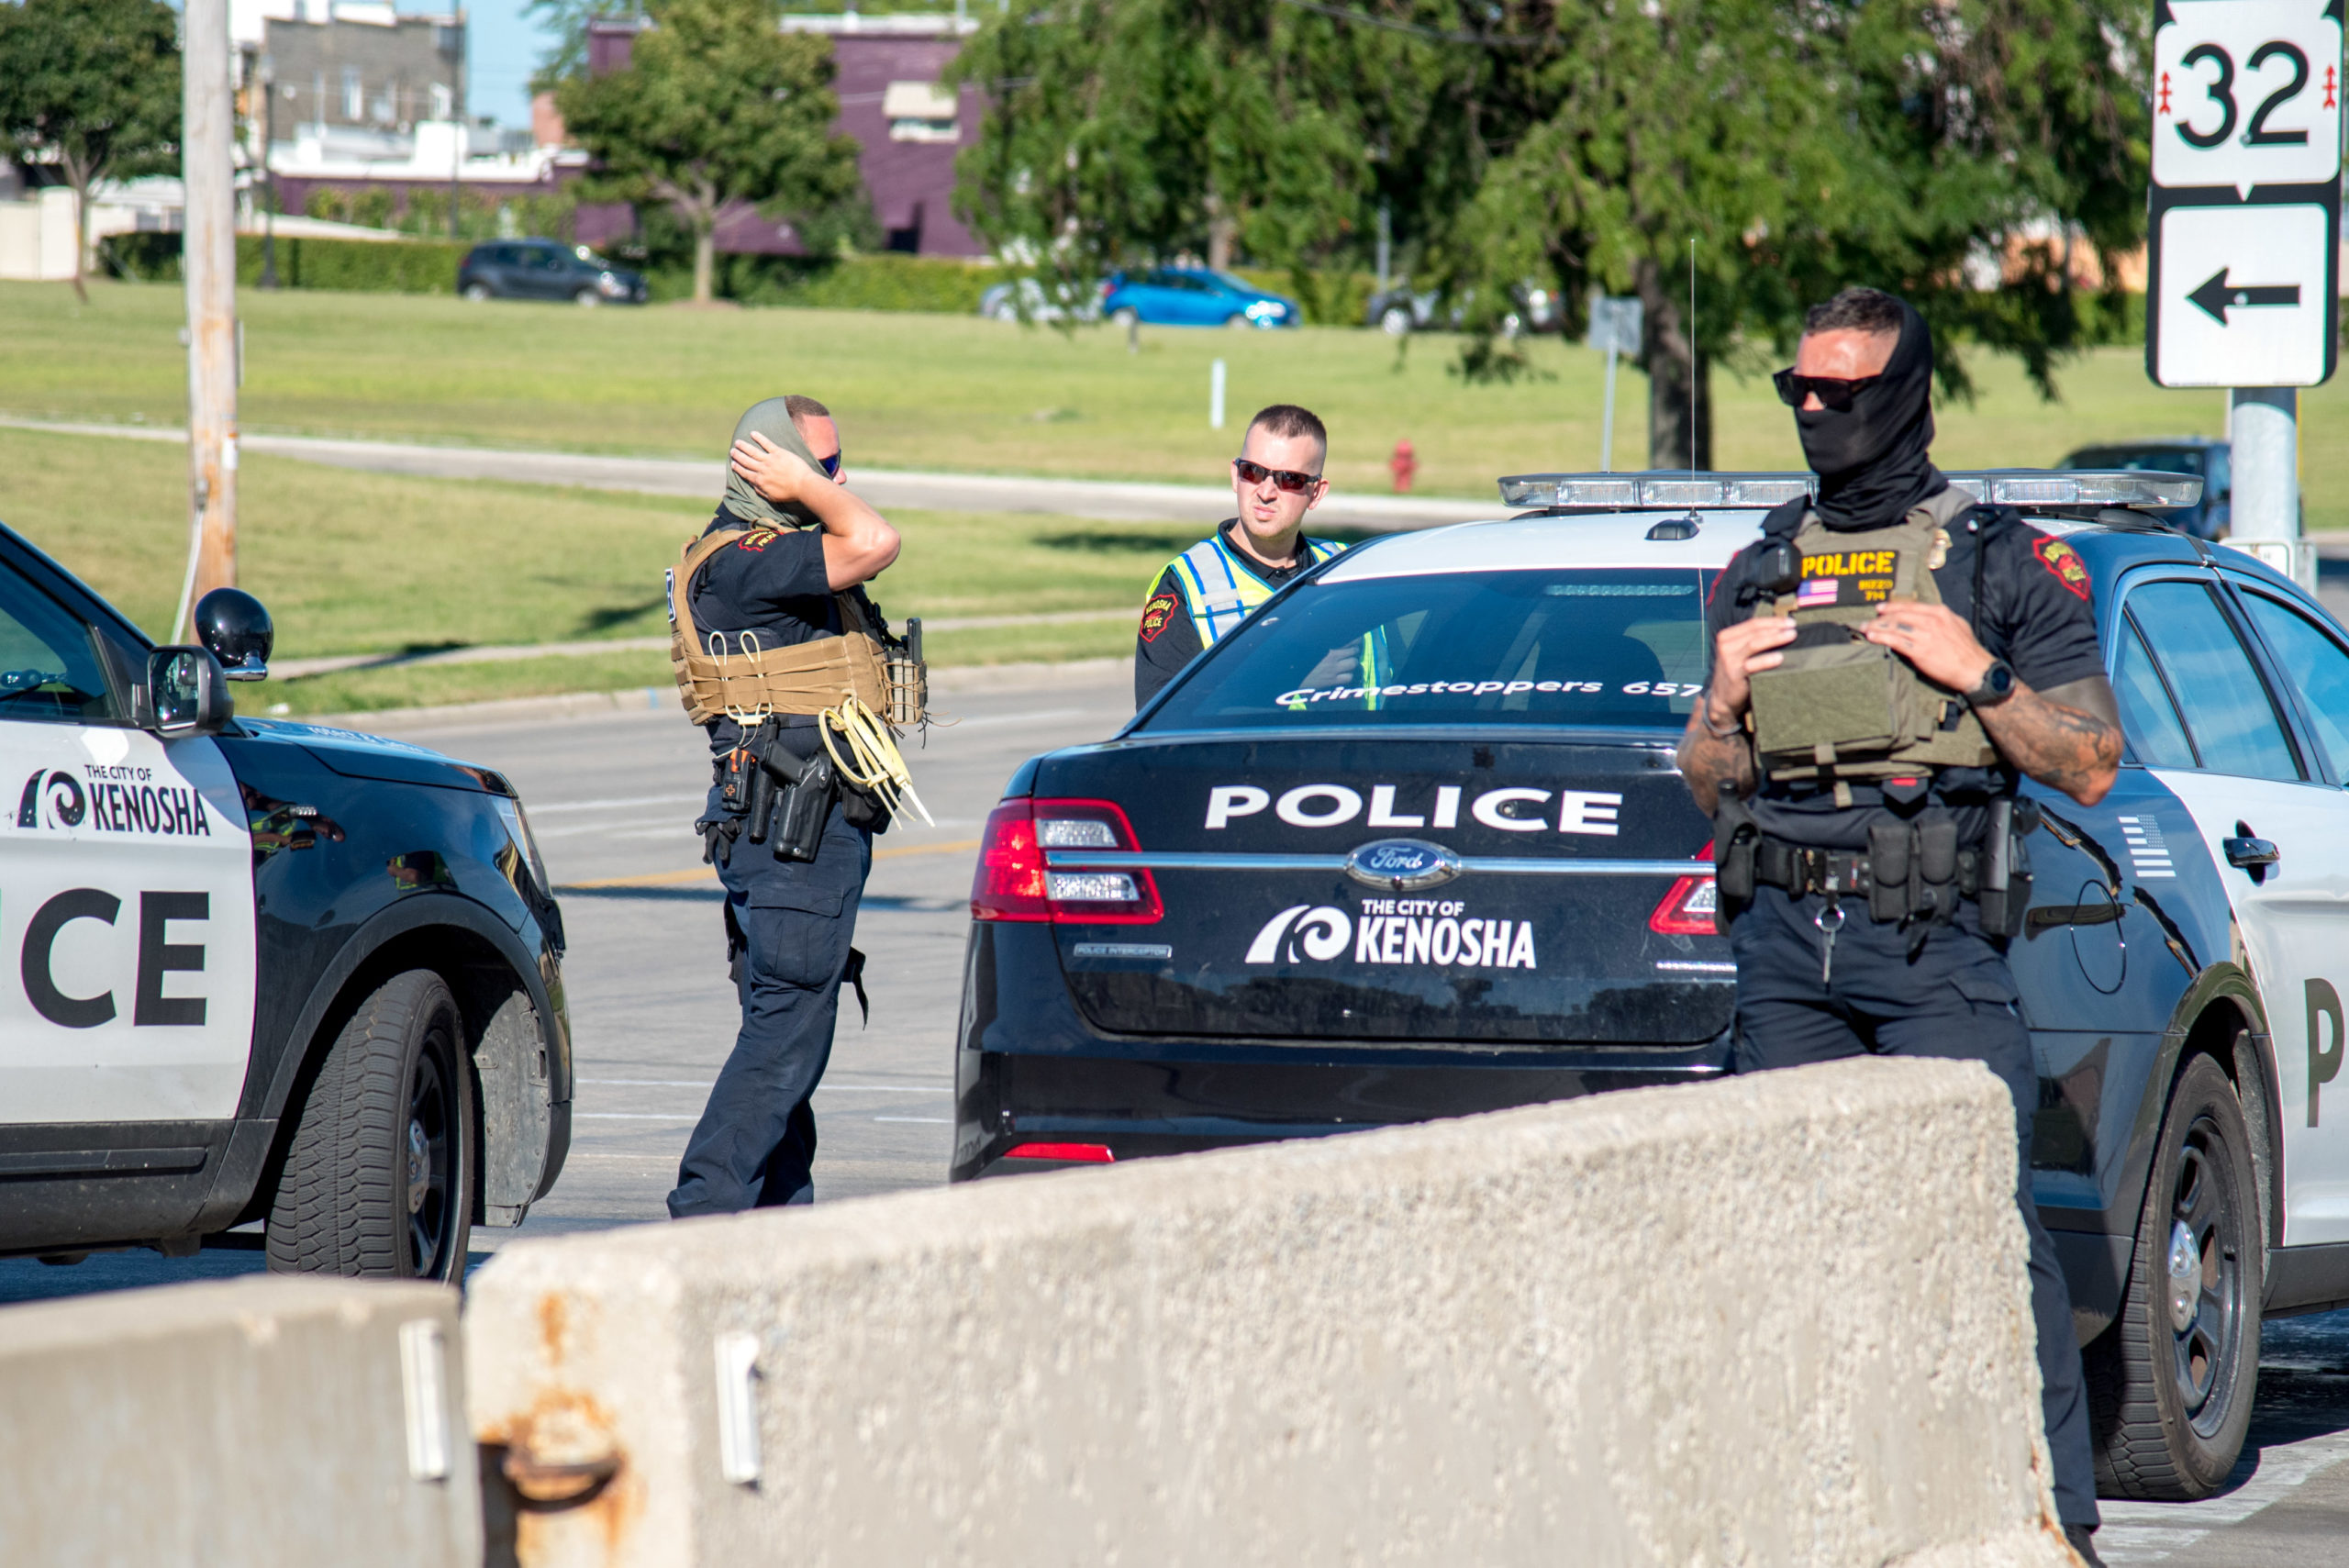 Kenosha, Wis., police officers are seen near the edge of a rally calling for justice for Jacob Blake, a Black man who was shot seven times in the back by a Kenosha police officer . Photographed on Aug. 29, 2020.